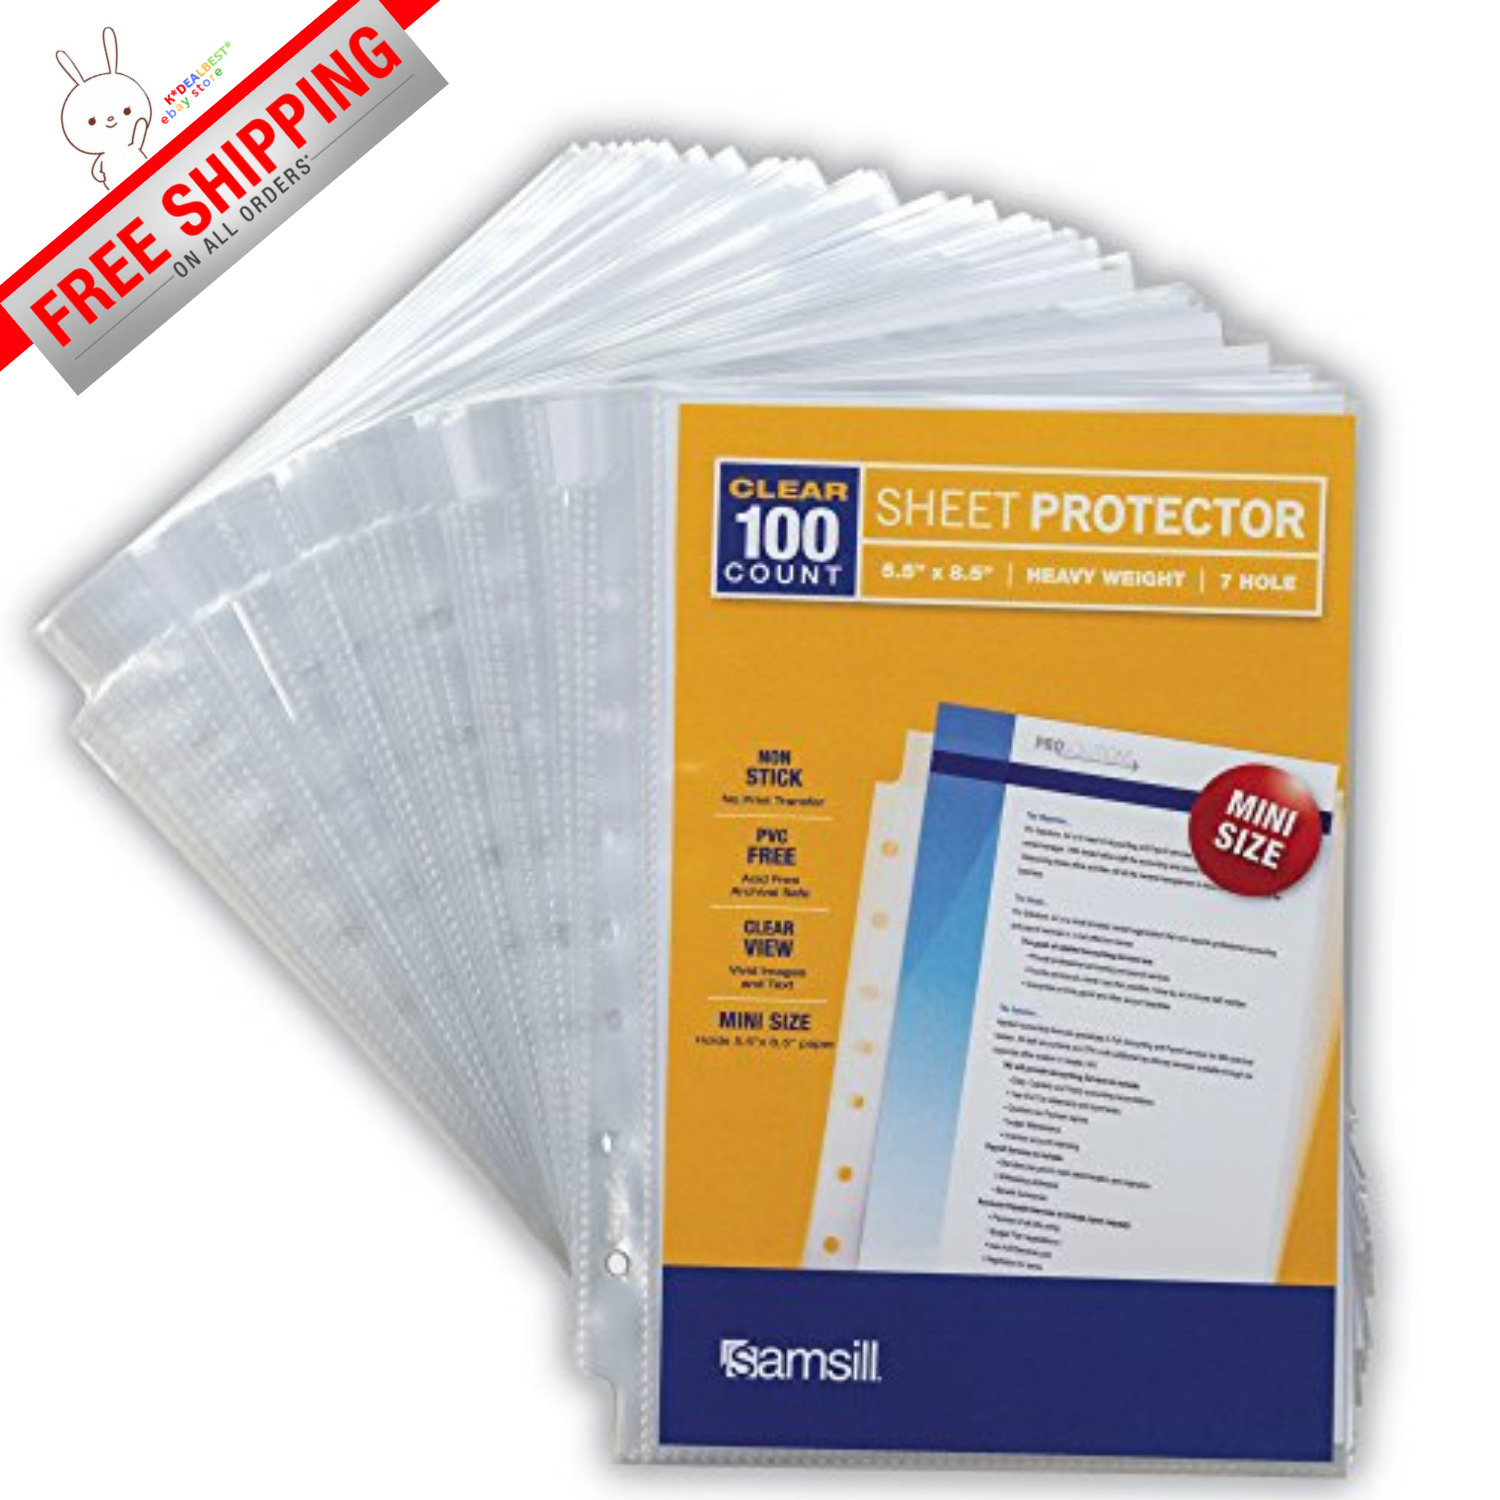 Best 100 Mini Clear Heavyweight Sheet Protectors, Top